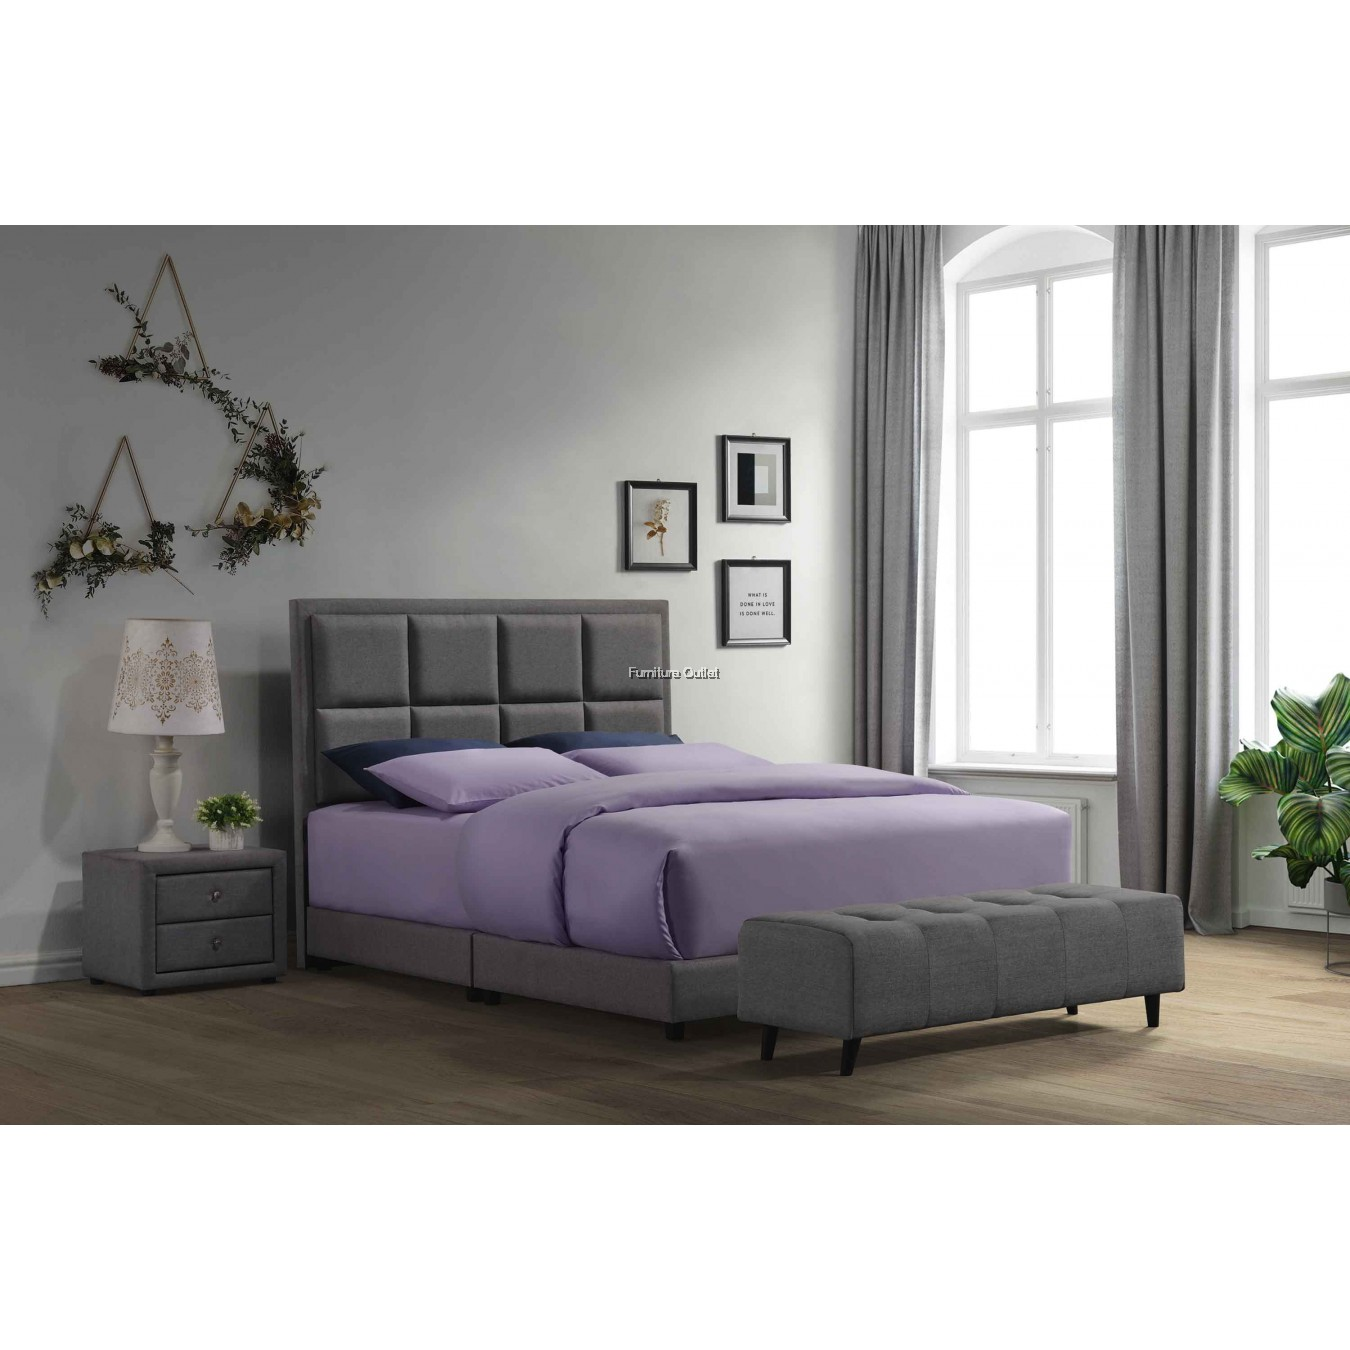 COCO QUEEN BED - GREY or BROWN